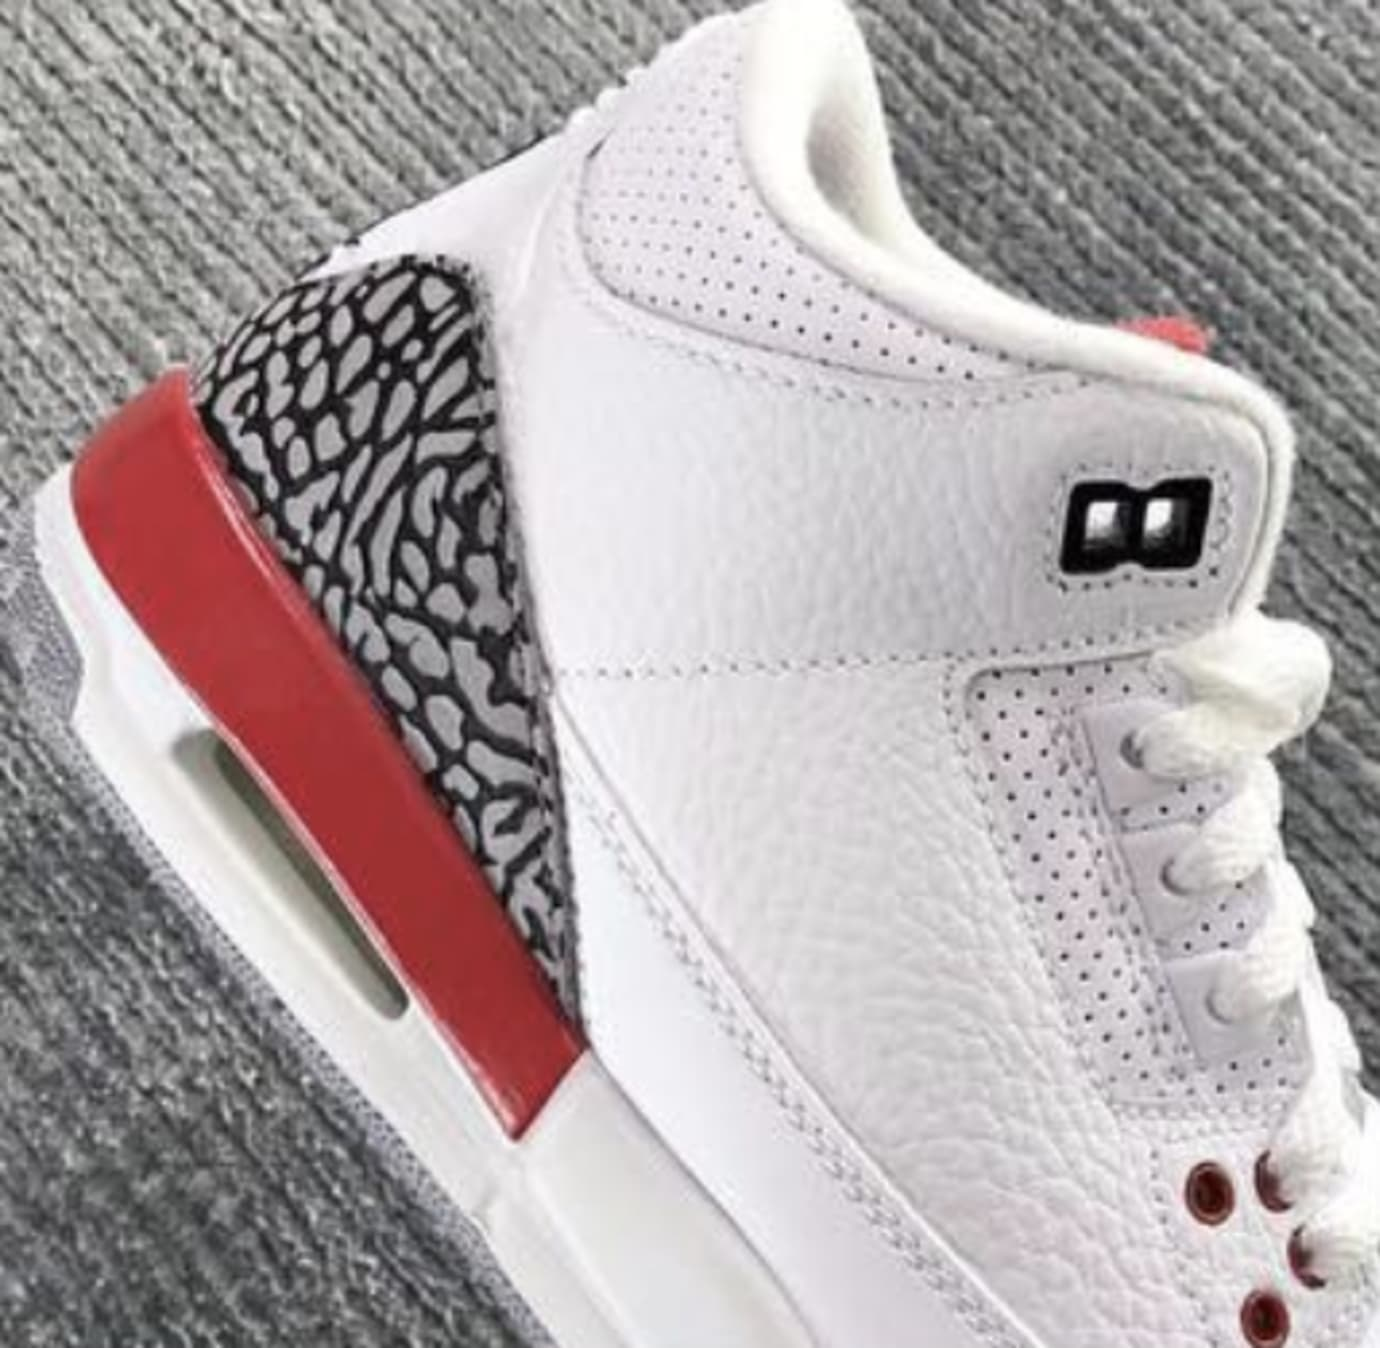 best service 820ea 44026 Air Jordan 3 'Katrina' 136064-116 Detailed Images | Sole ...